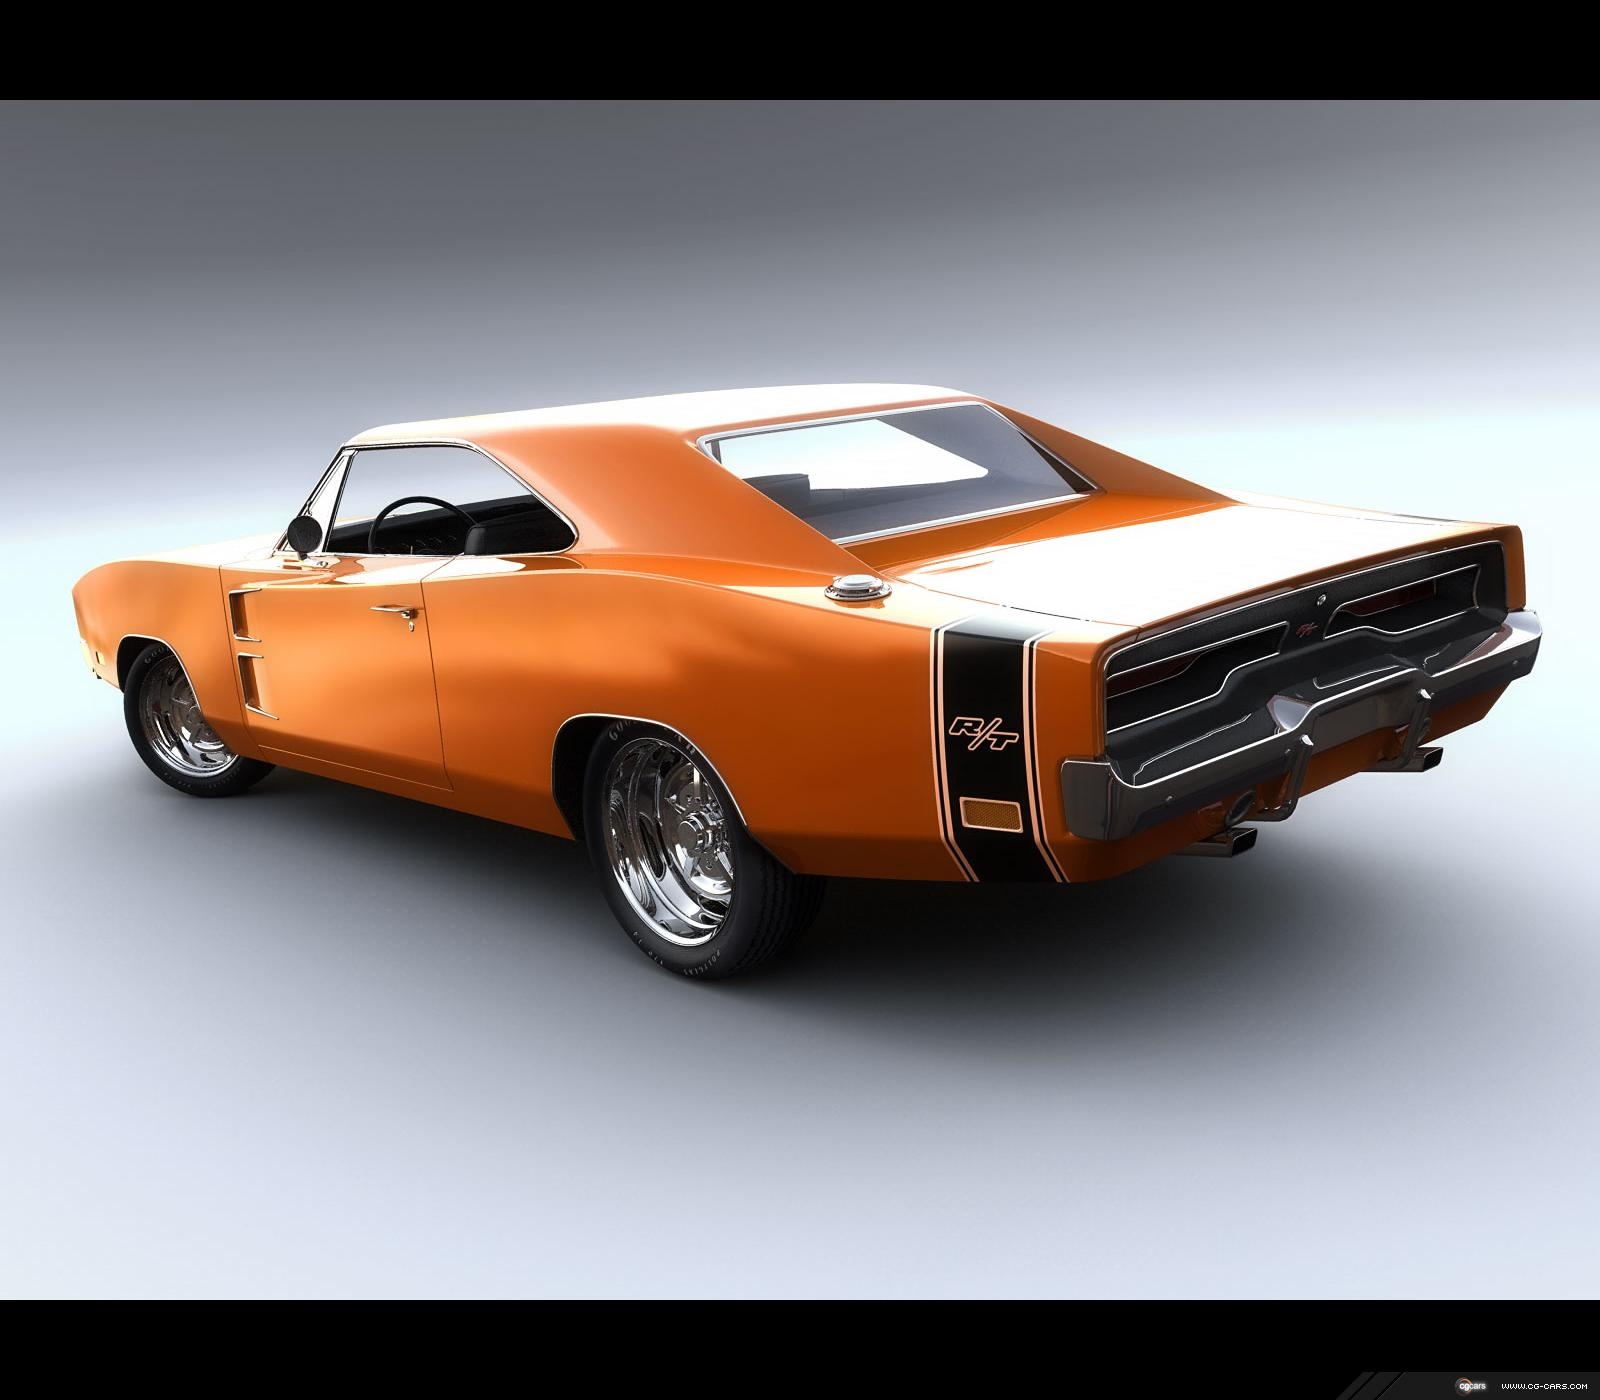 1 1969 Dodge Charger Rt Wallpapers | 1969 Dodge Charger Rt Backgrounds